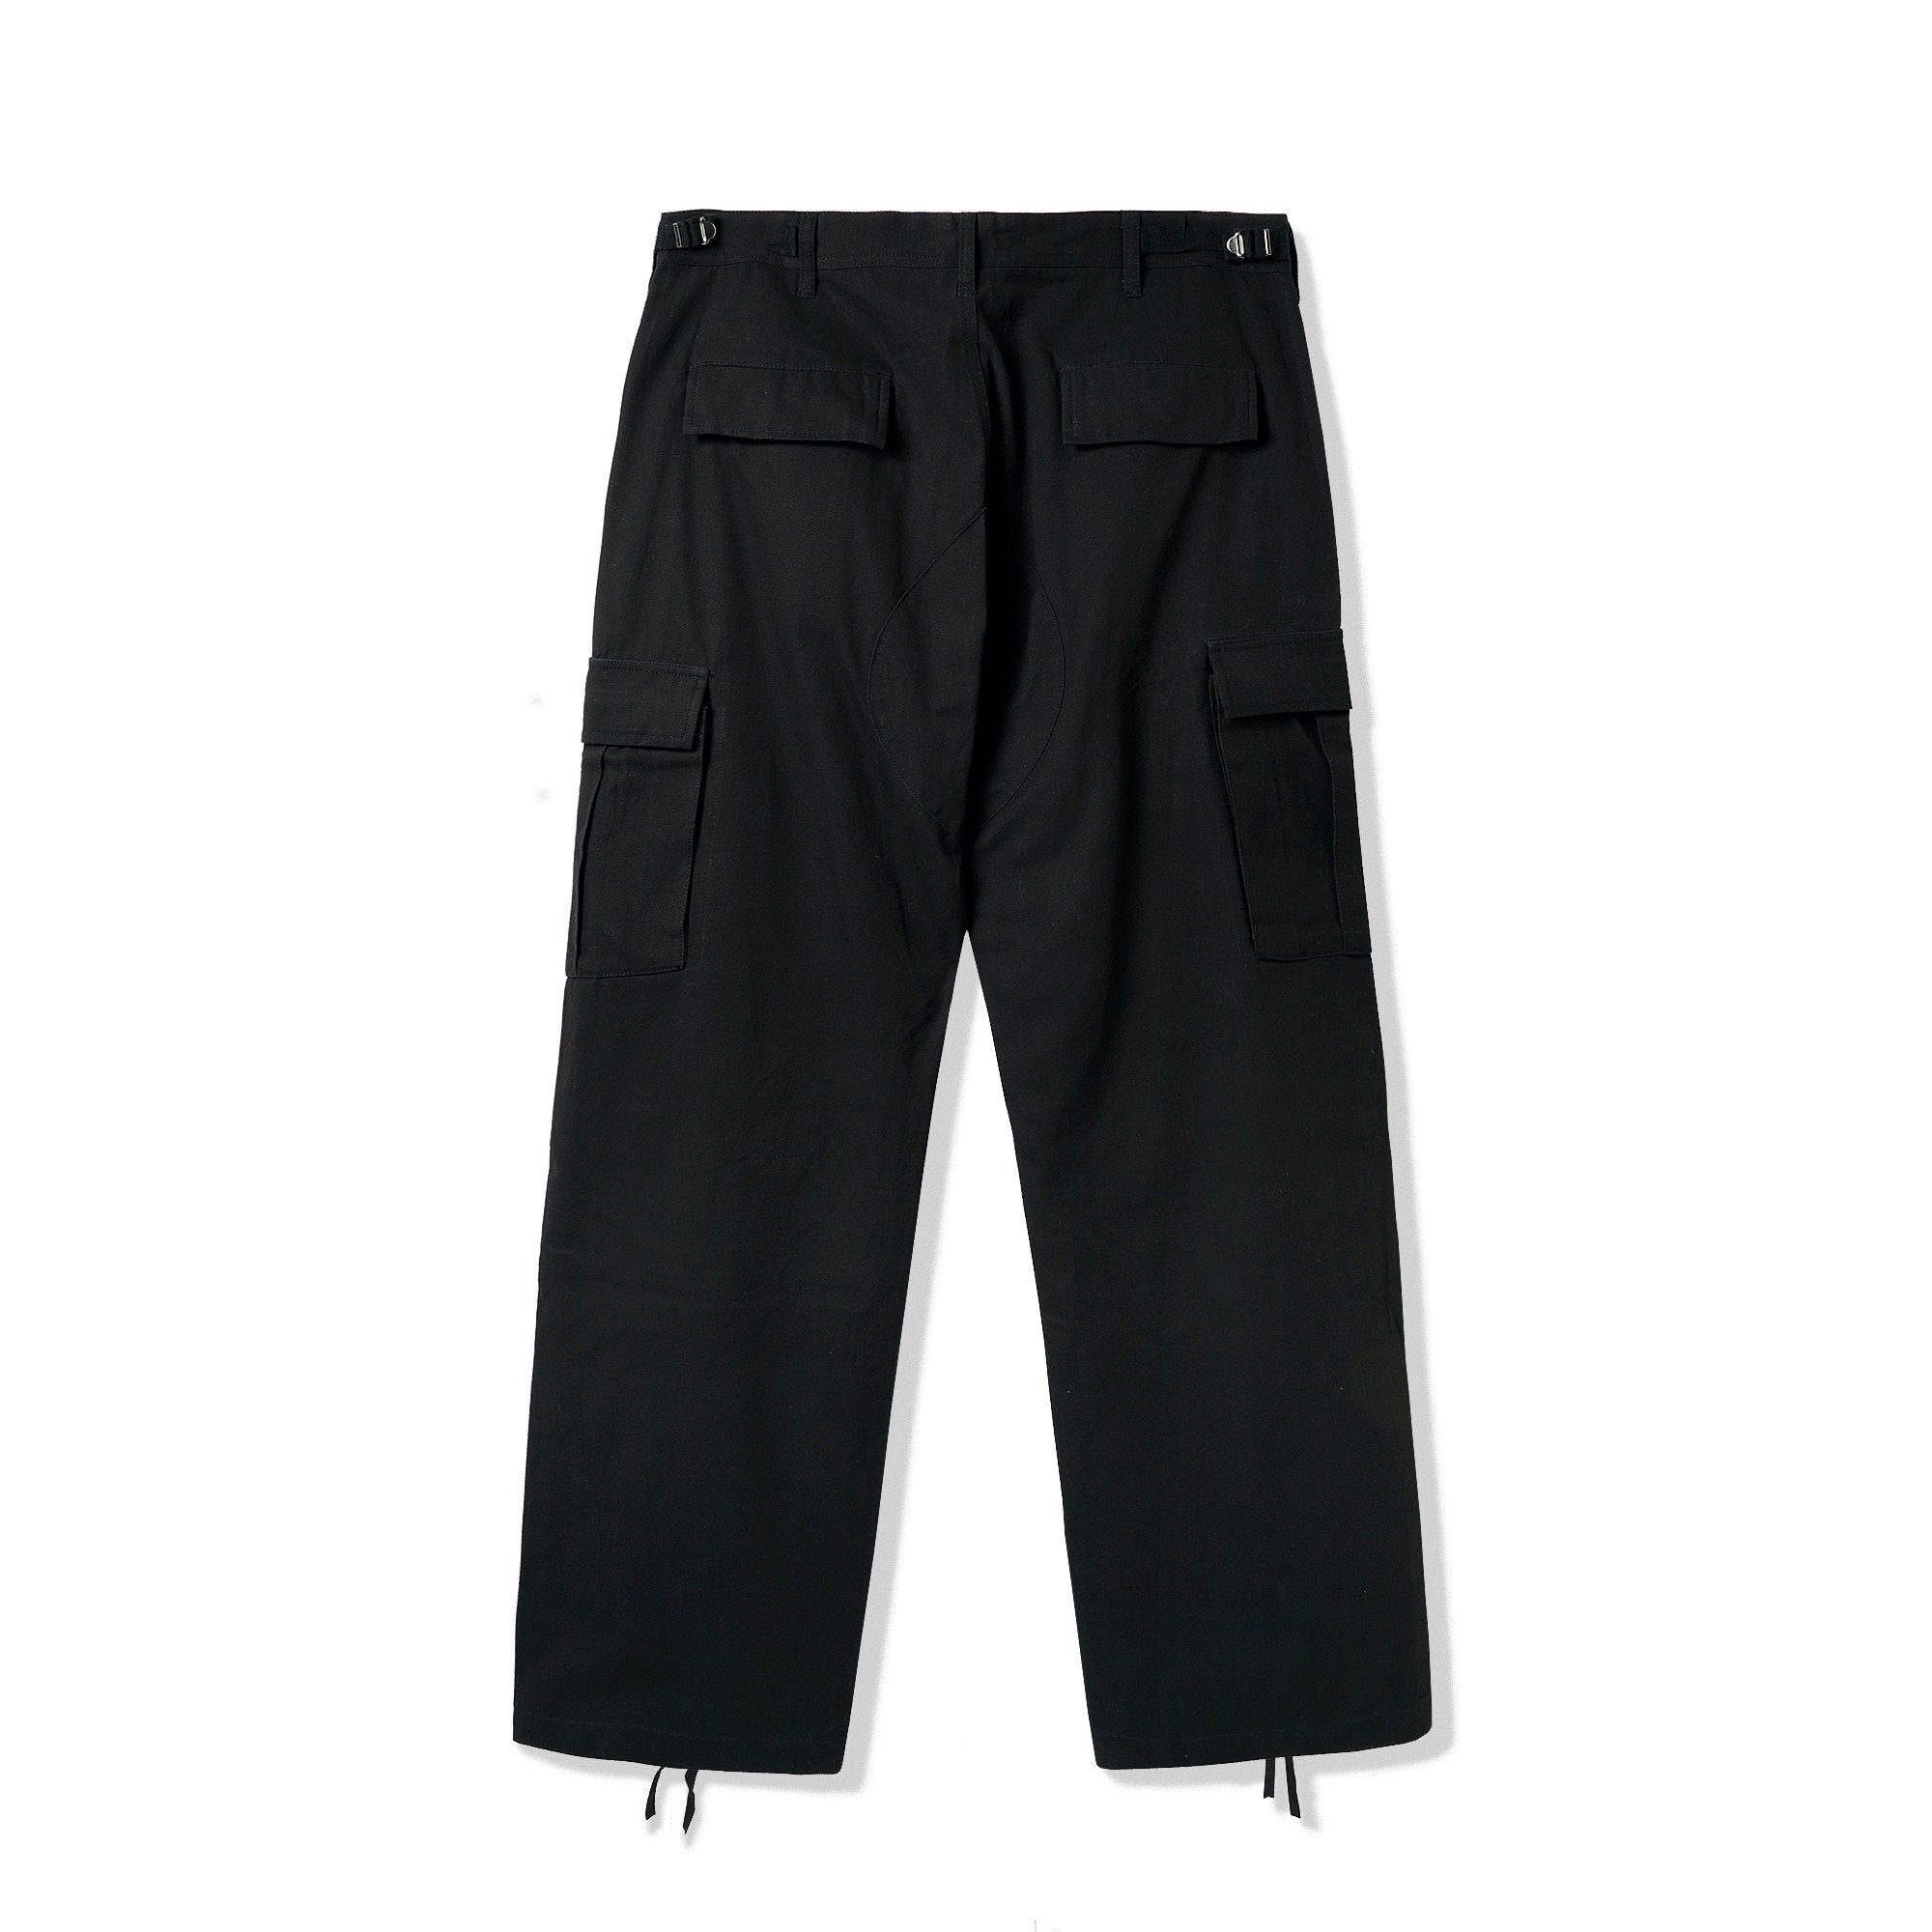 Butter Goods Santosuosso Pants Product Photo #2